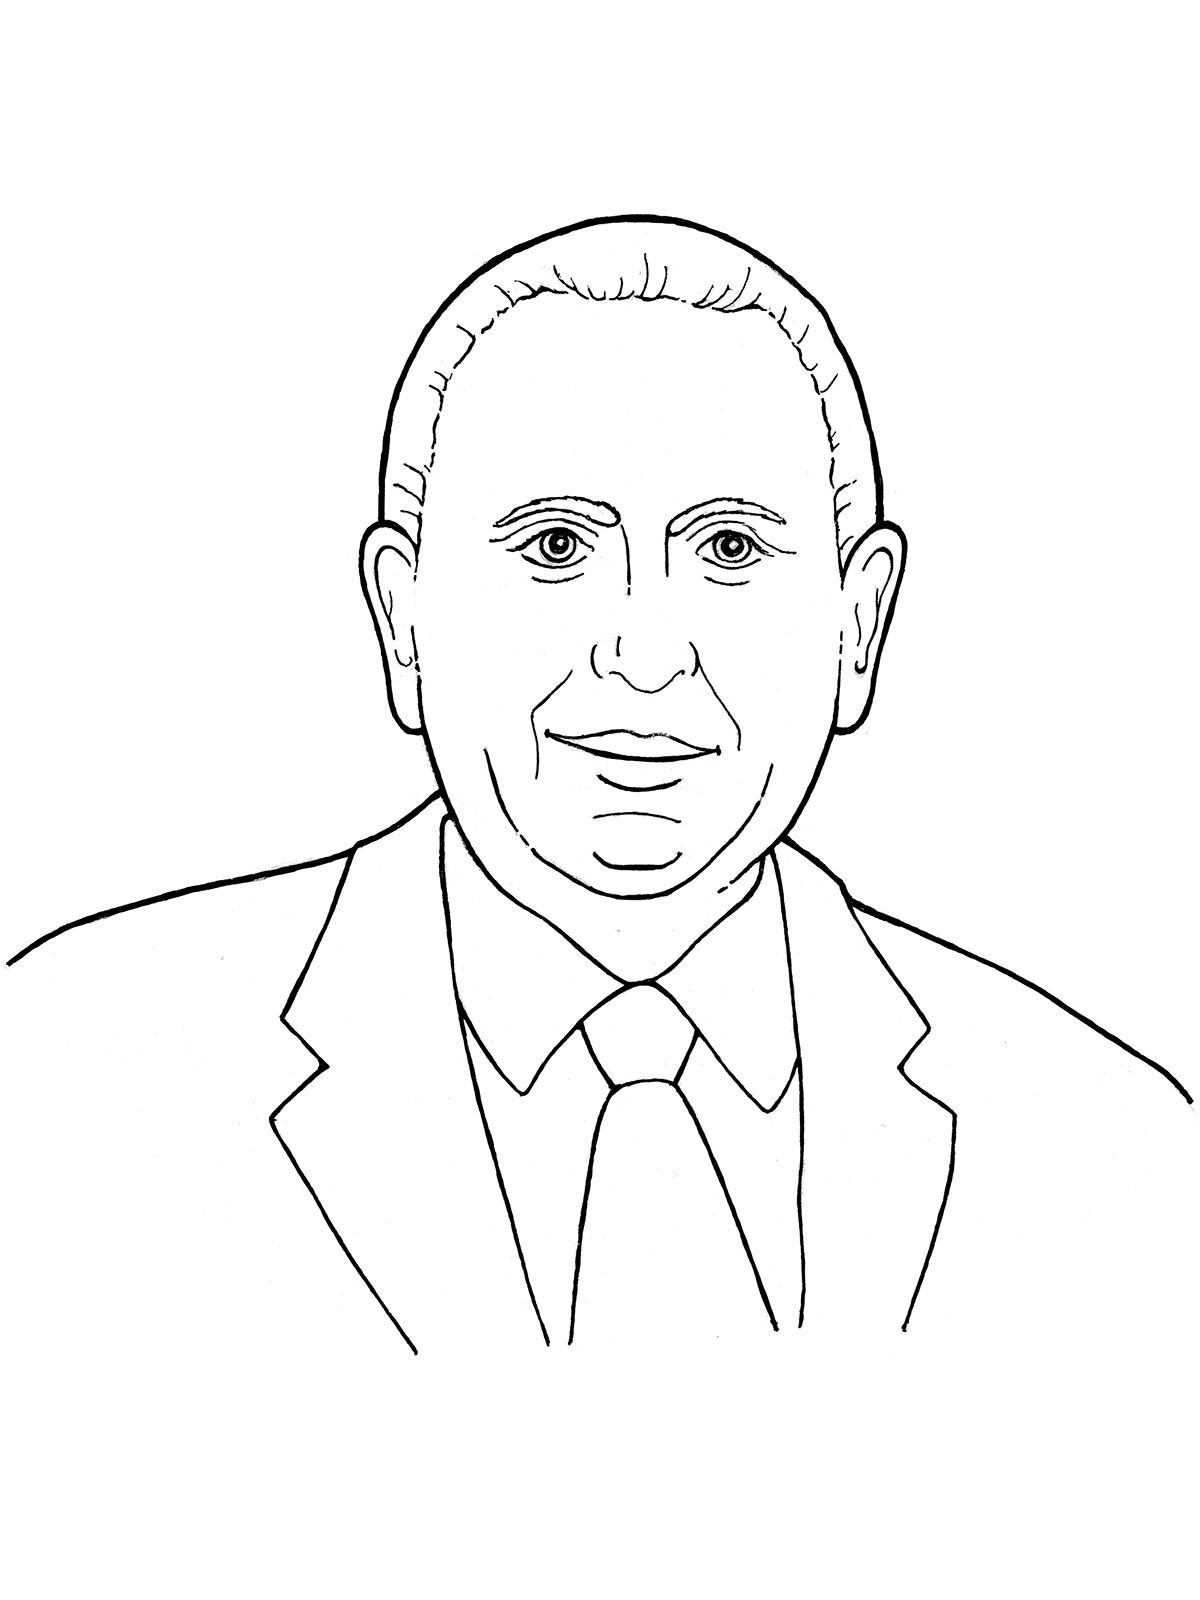 An illustration of our. Lds clipart president monson